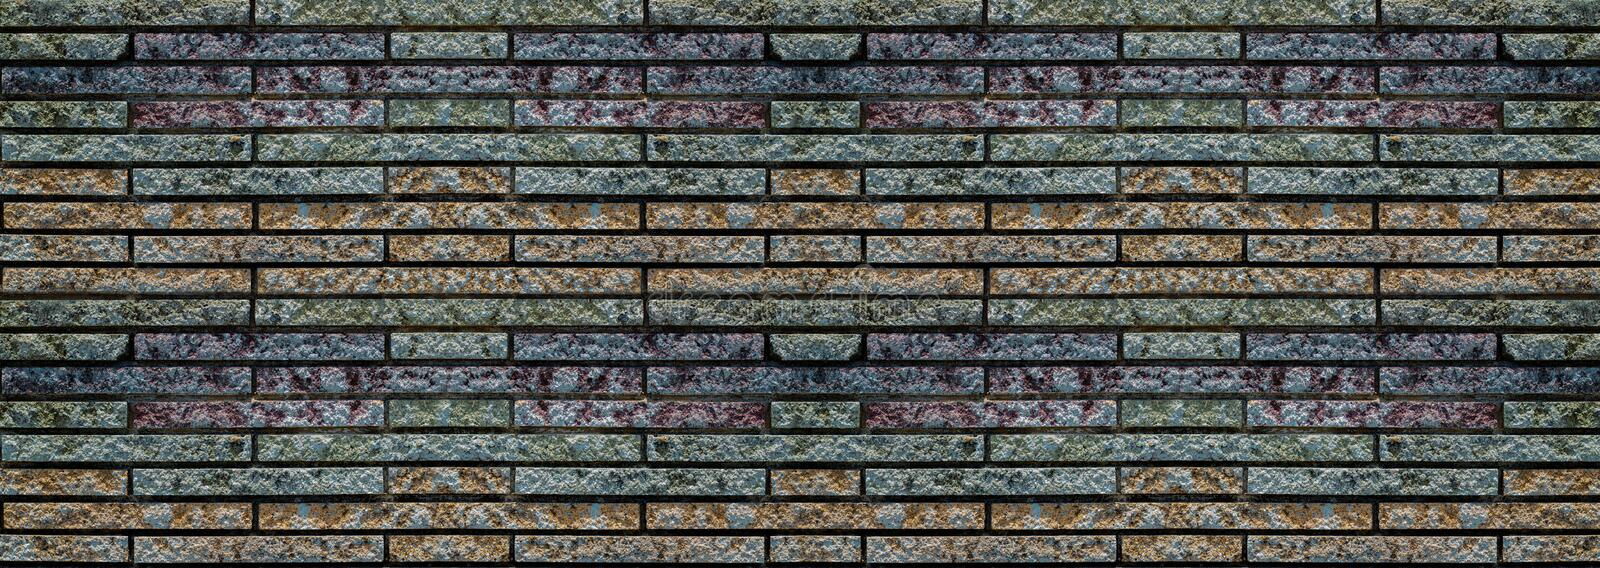 Wide old brick wall , vintage brick wall  in a background image. Wide old brick wall pattern, vintage brick wall  in a background image stock photos